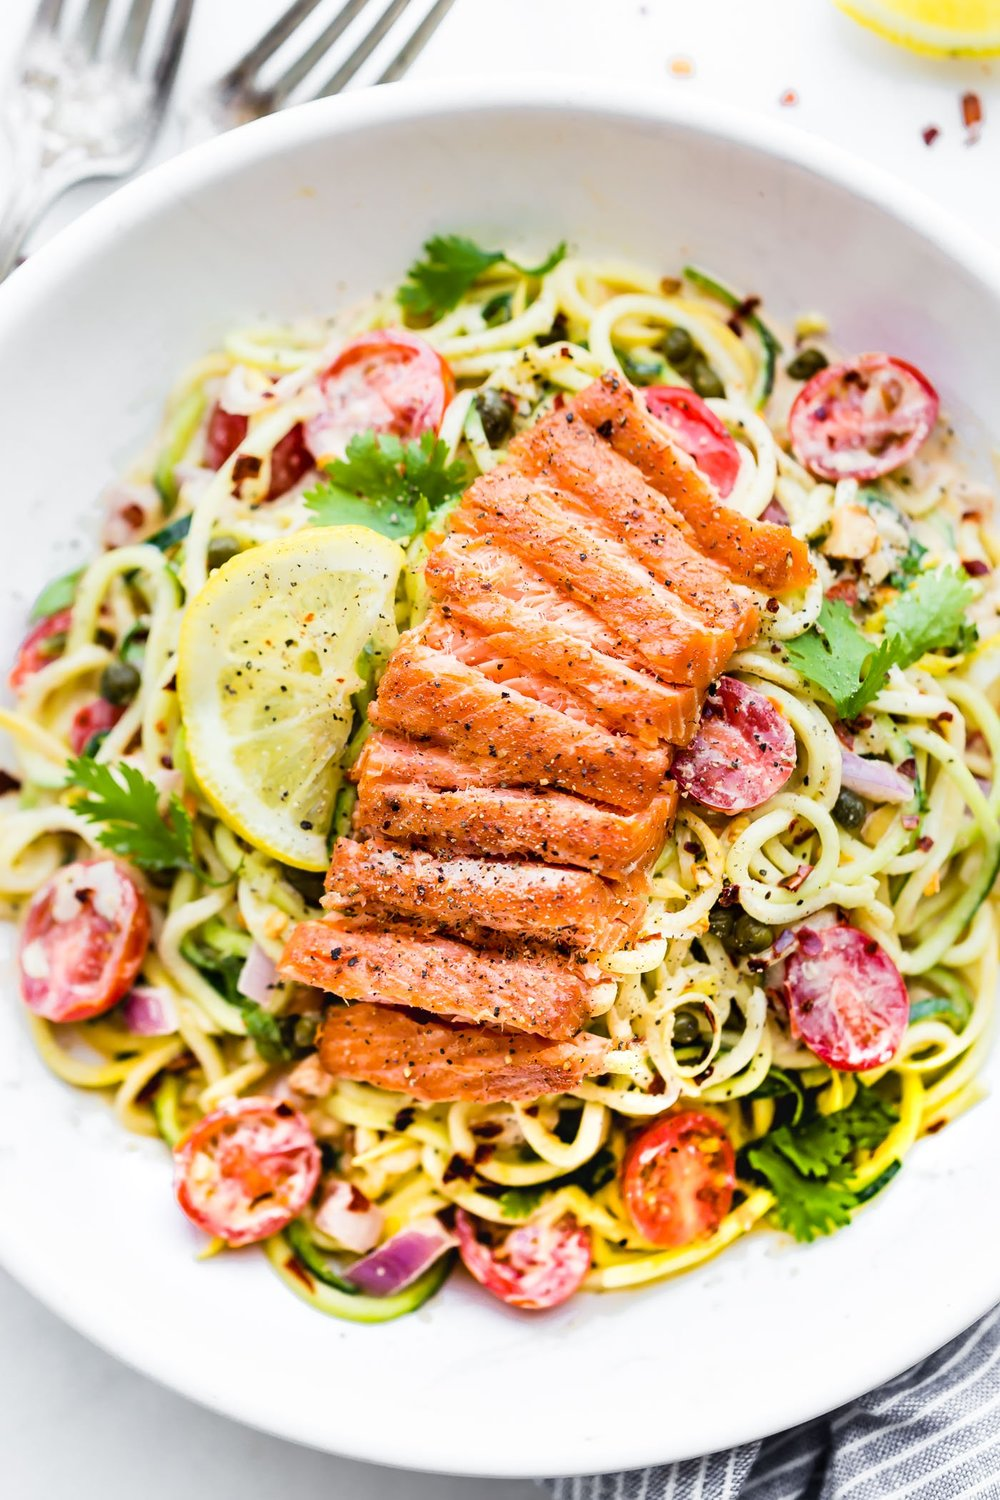 Cajun Smoked Salmon Zucchini Noodle Salad from Cotter Crunch. Get the recipe here. -